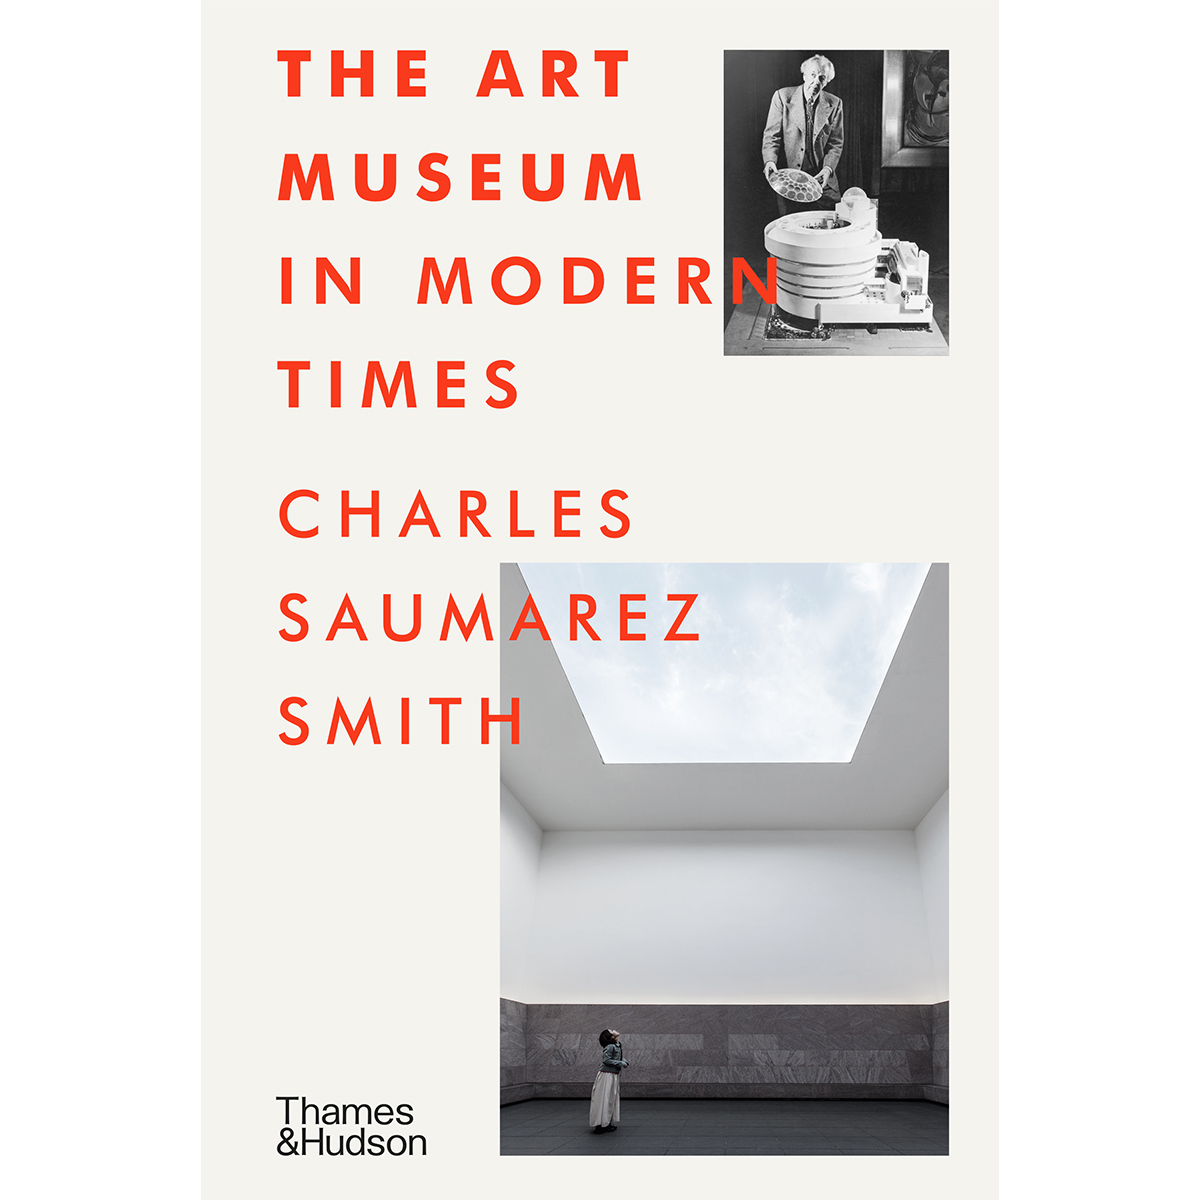 The Art Museum in Modern Times (signed)